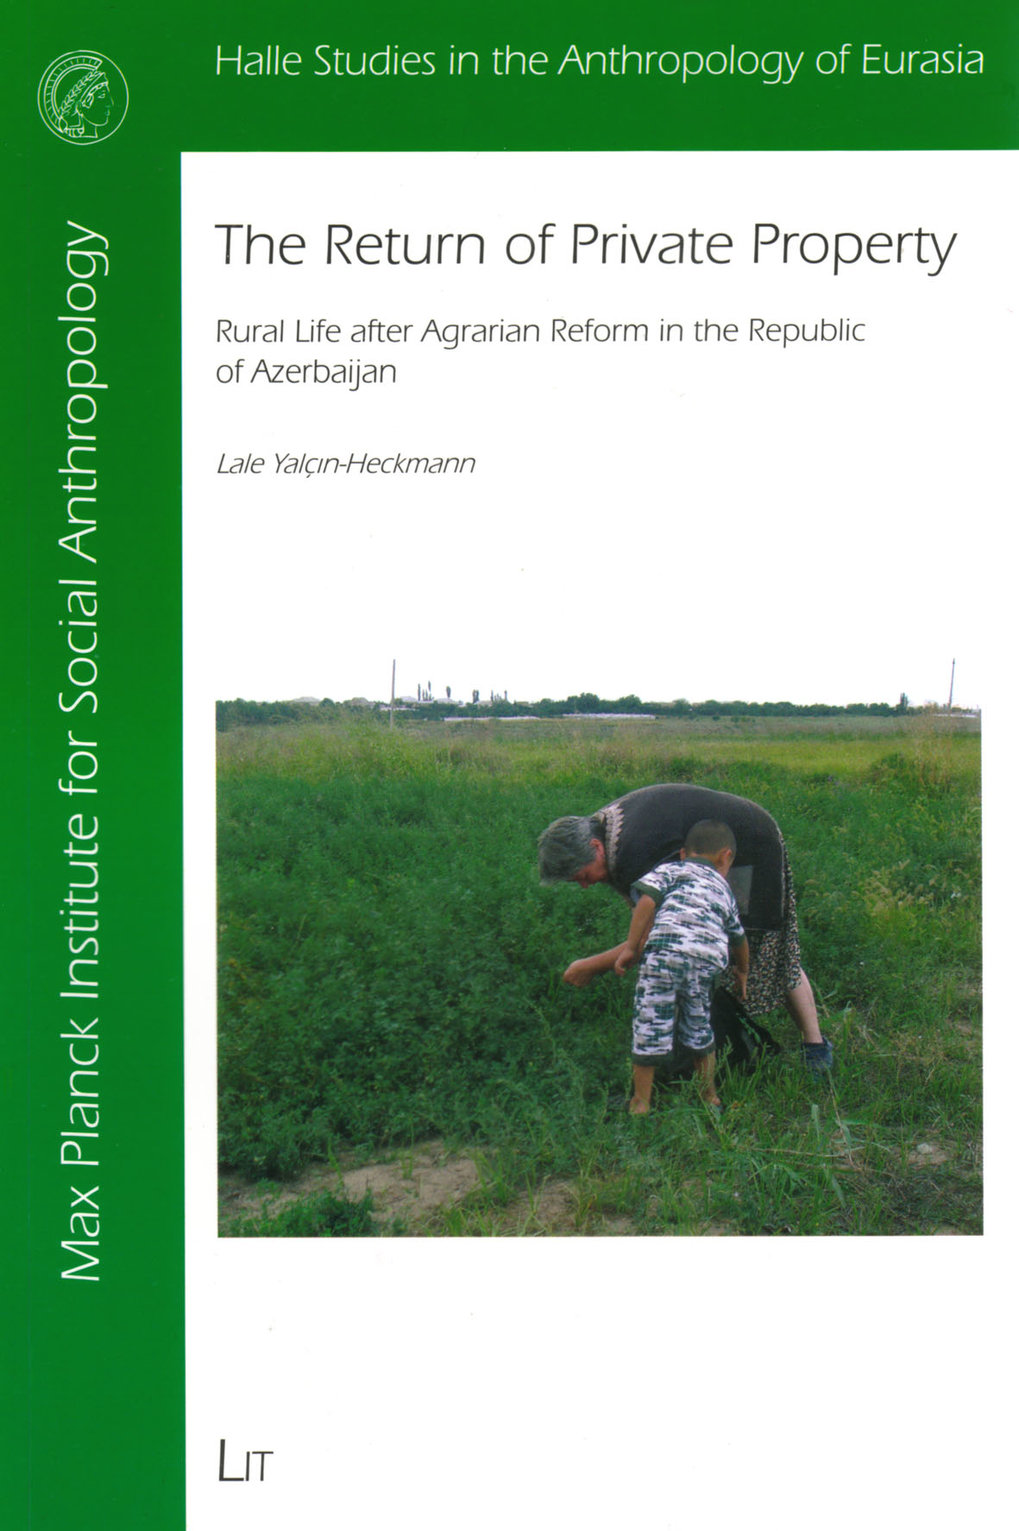 The Return of Private Property. Rural Life after Agrarian Reform in the Republic of Azerbaijan